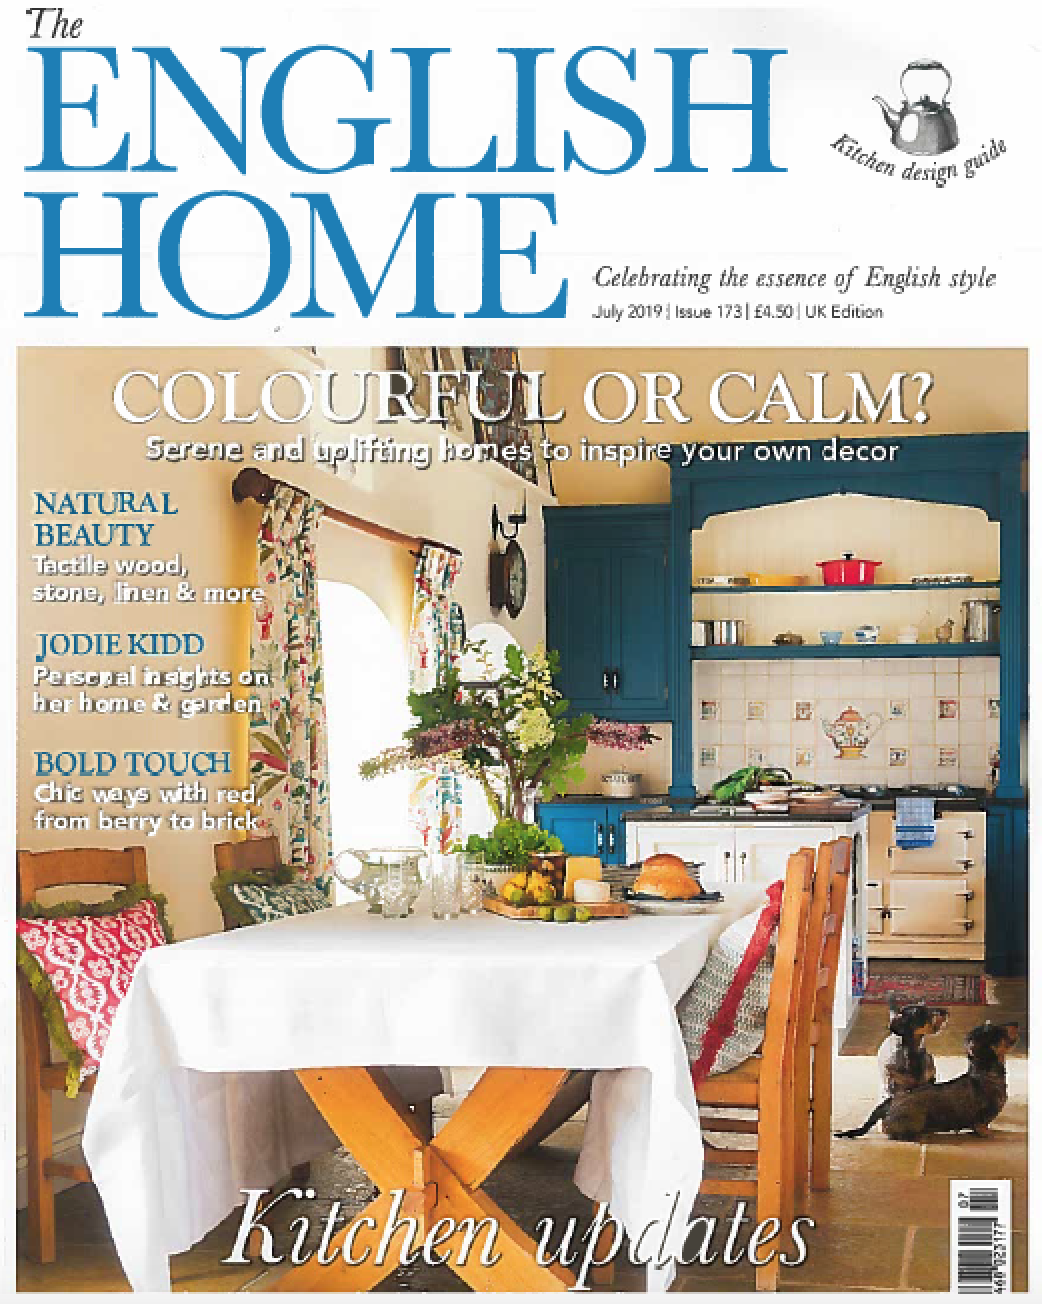 The English Home - July 2019  Featuring an 8-page article on Emma's North Norfolk home.